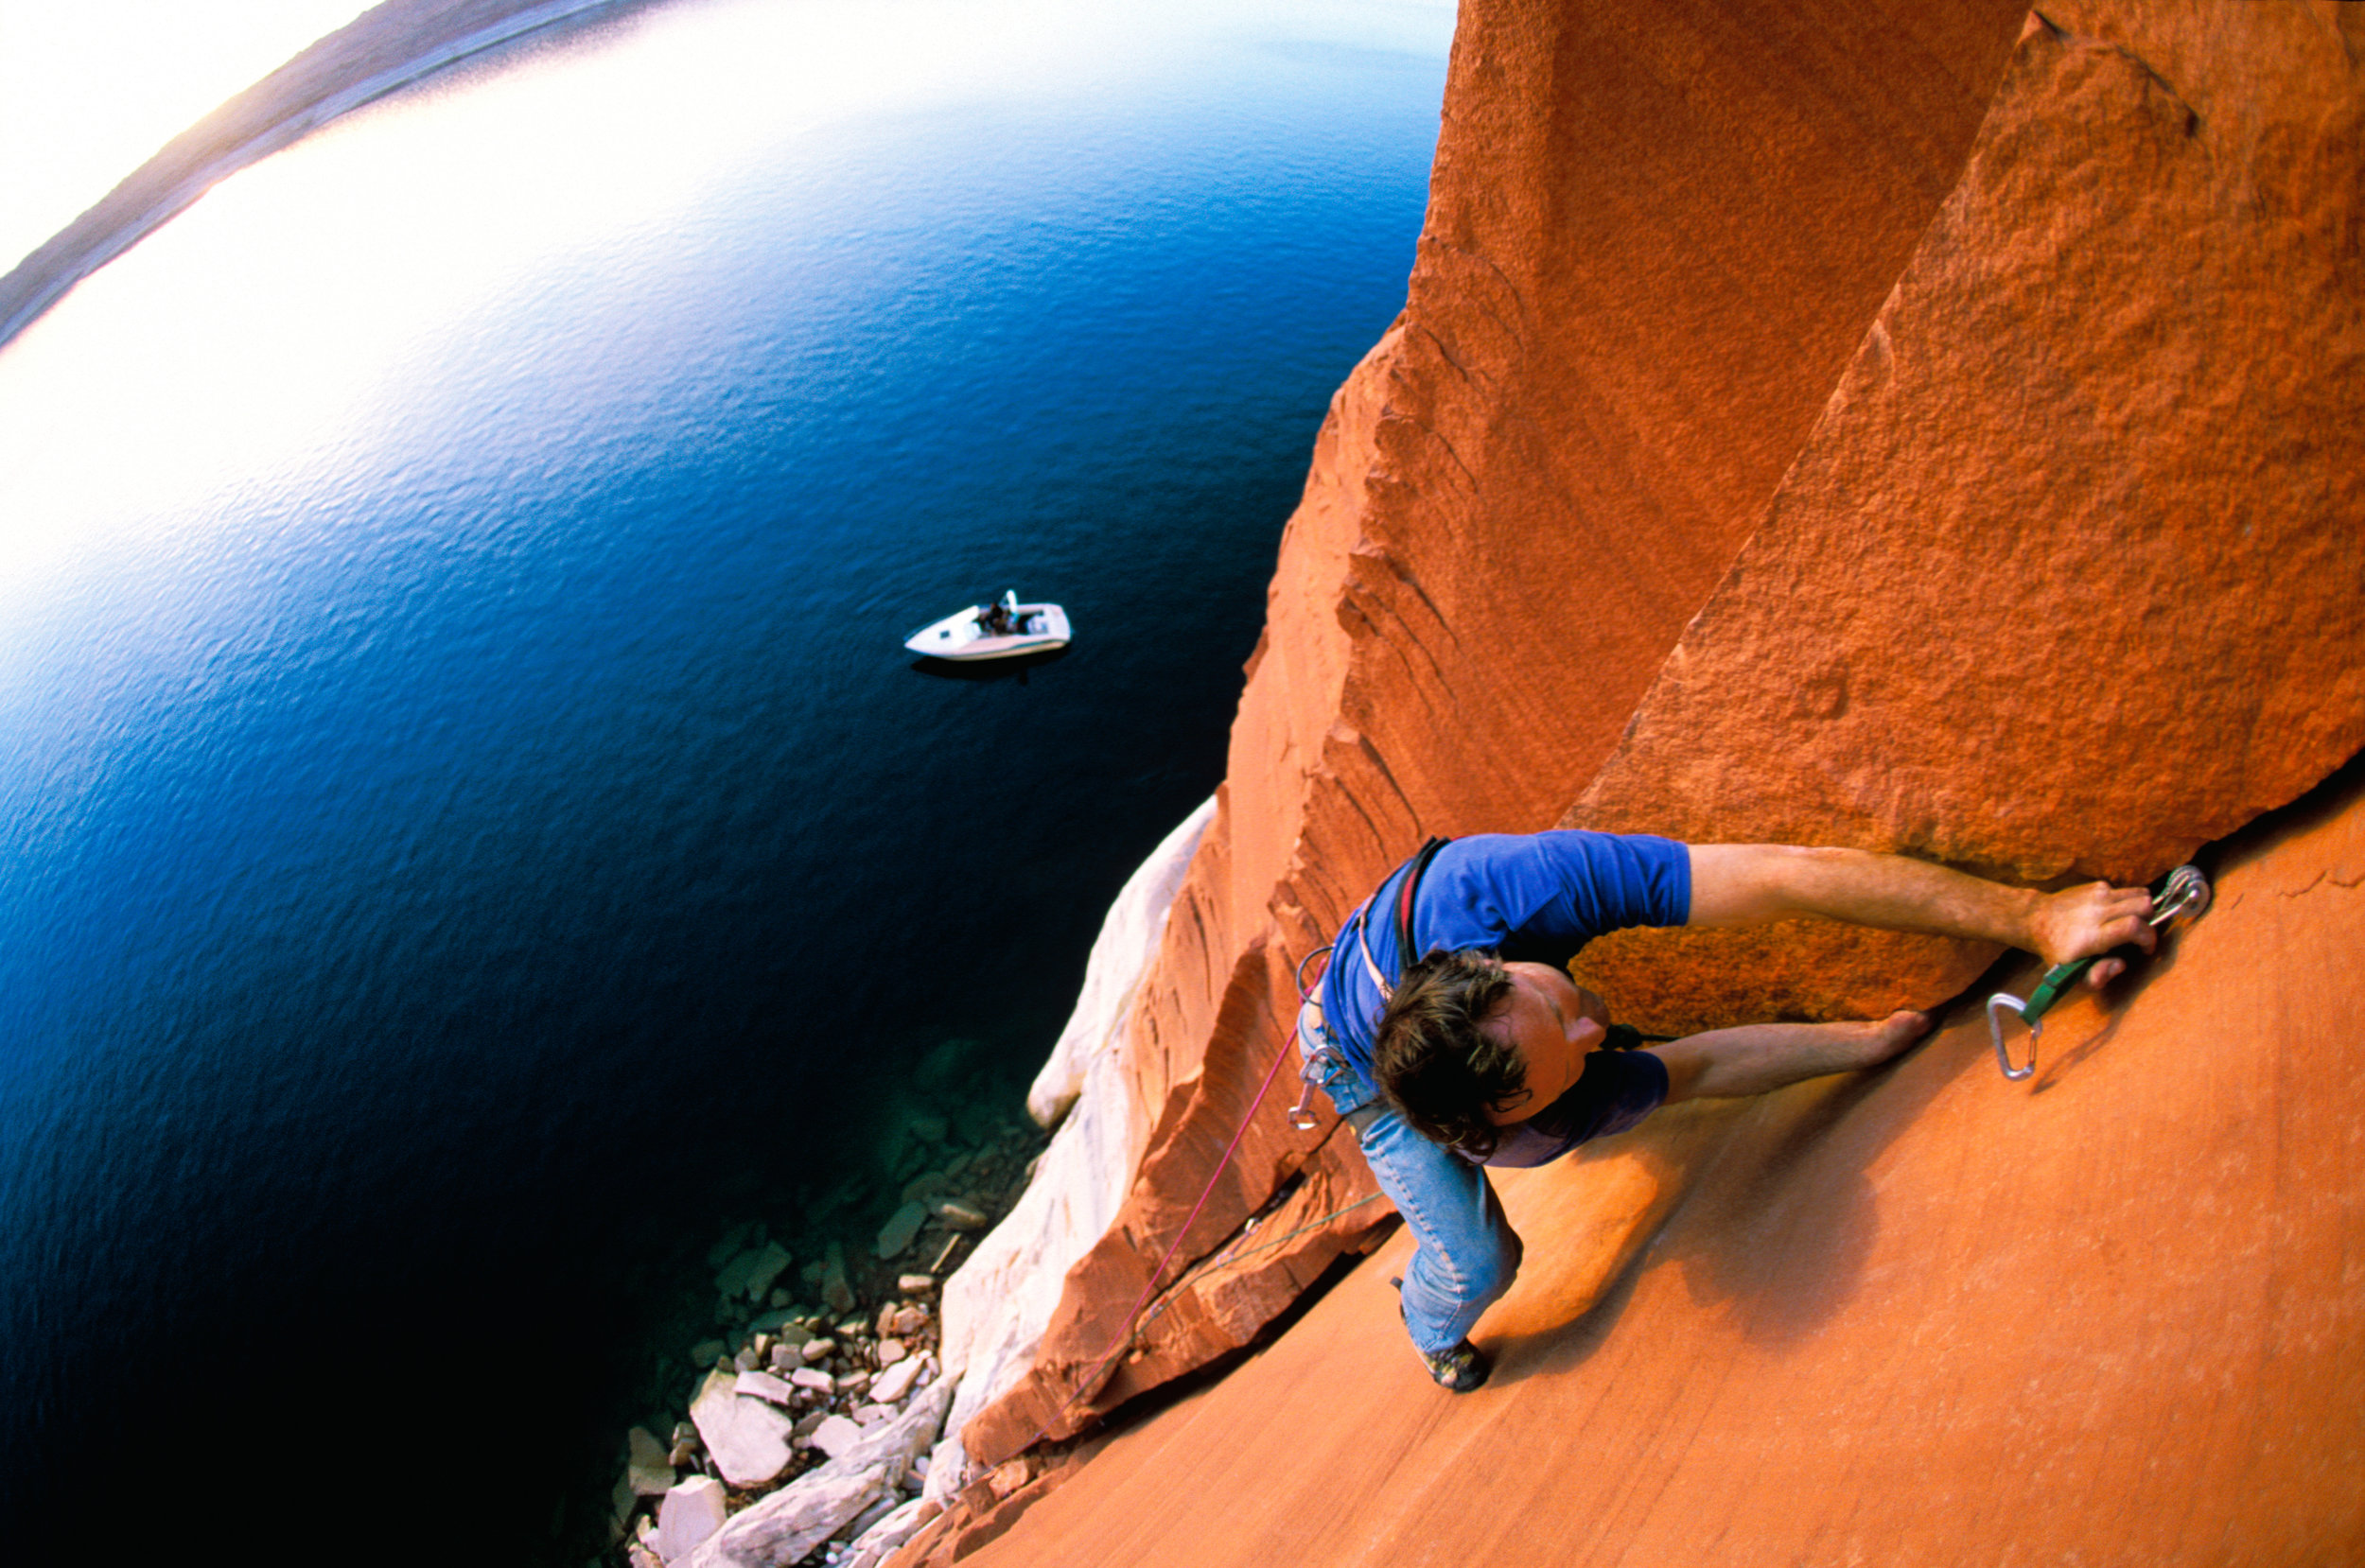 Craig Luebben — Lake Powell, Utah